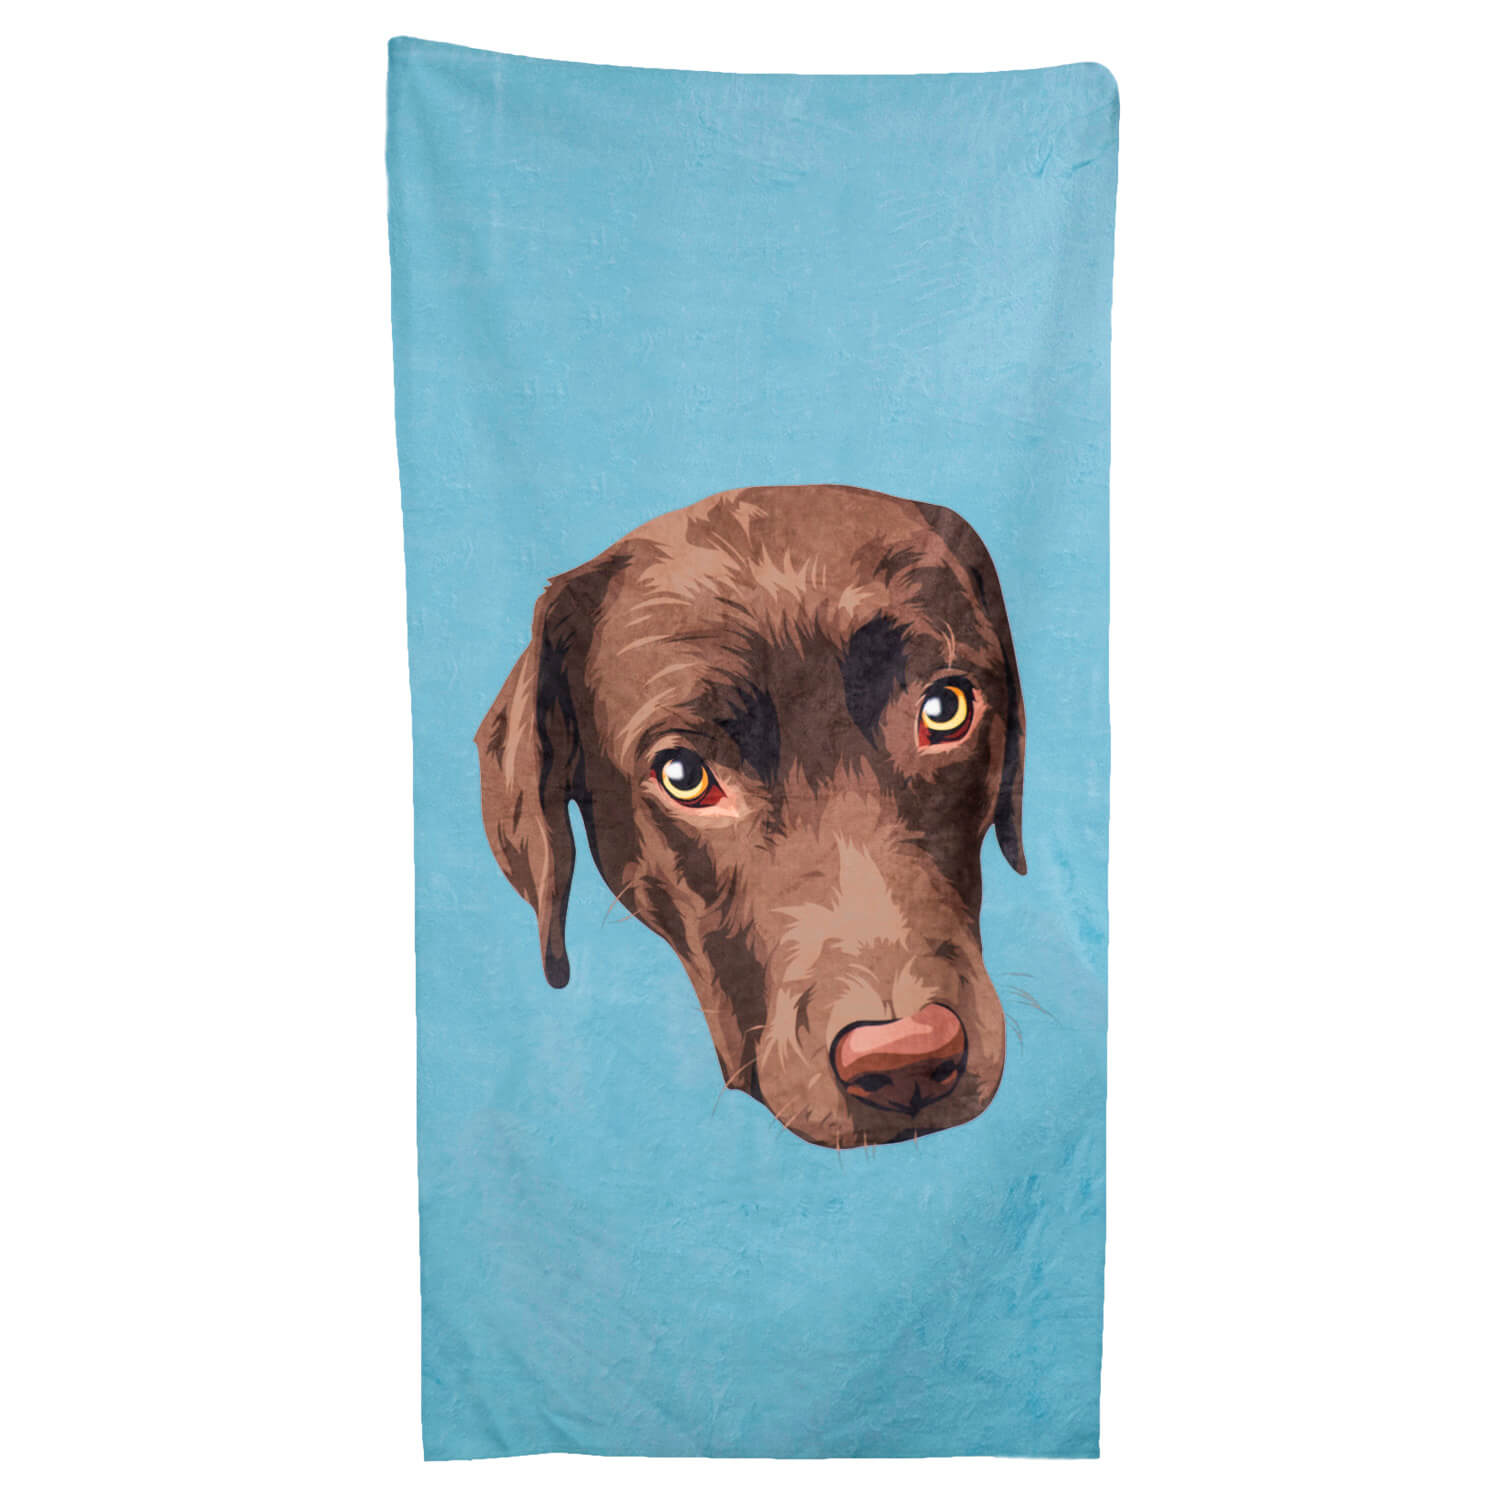 Customizable Beach Towel